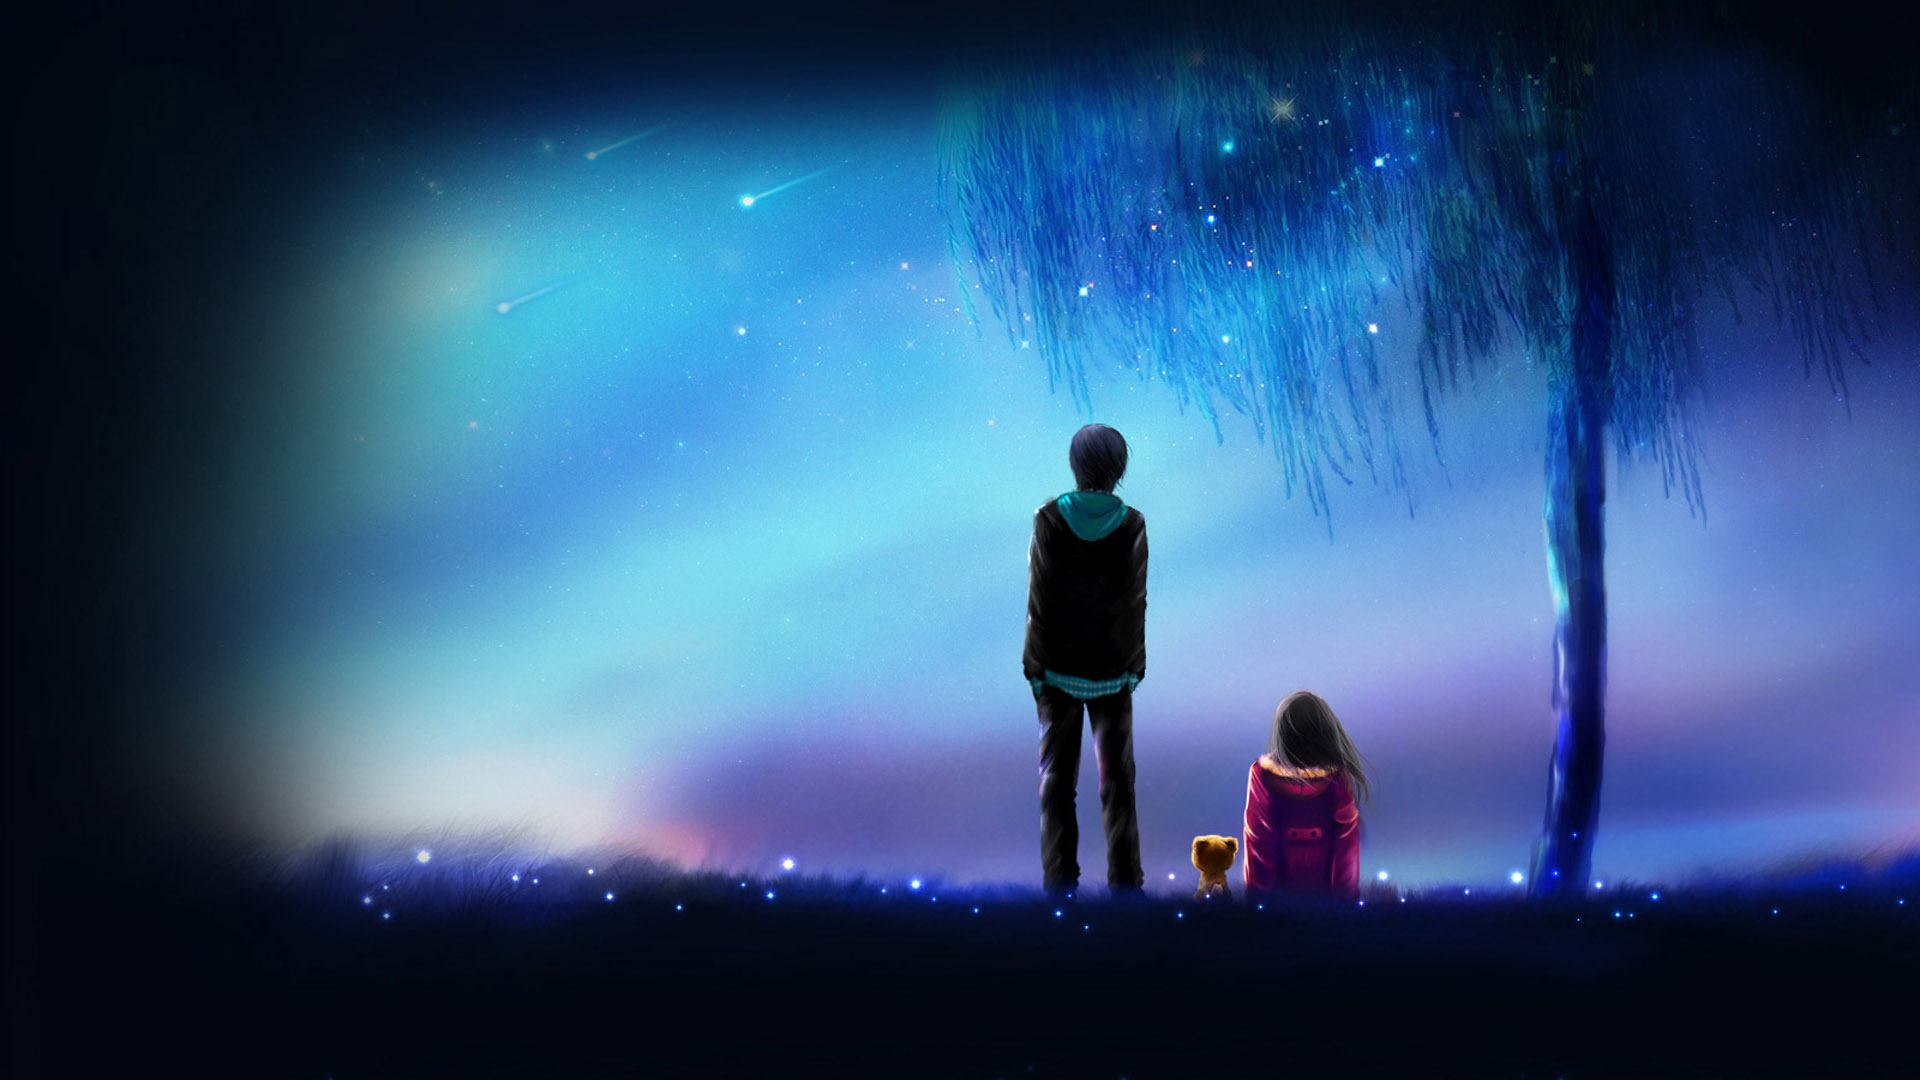 Cute Couples Holding Hands Wallpapers Meteor Anime Anime Boy Anime Girl Love Night Friends